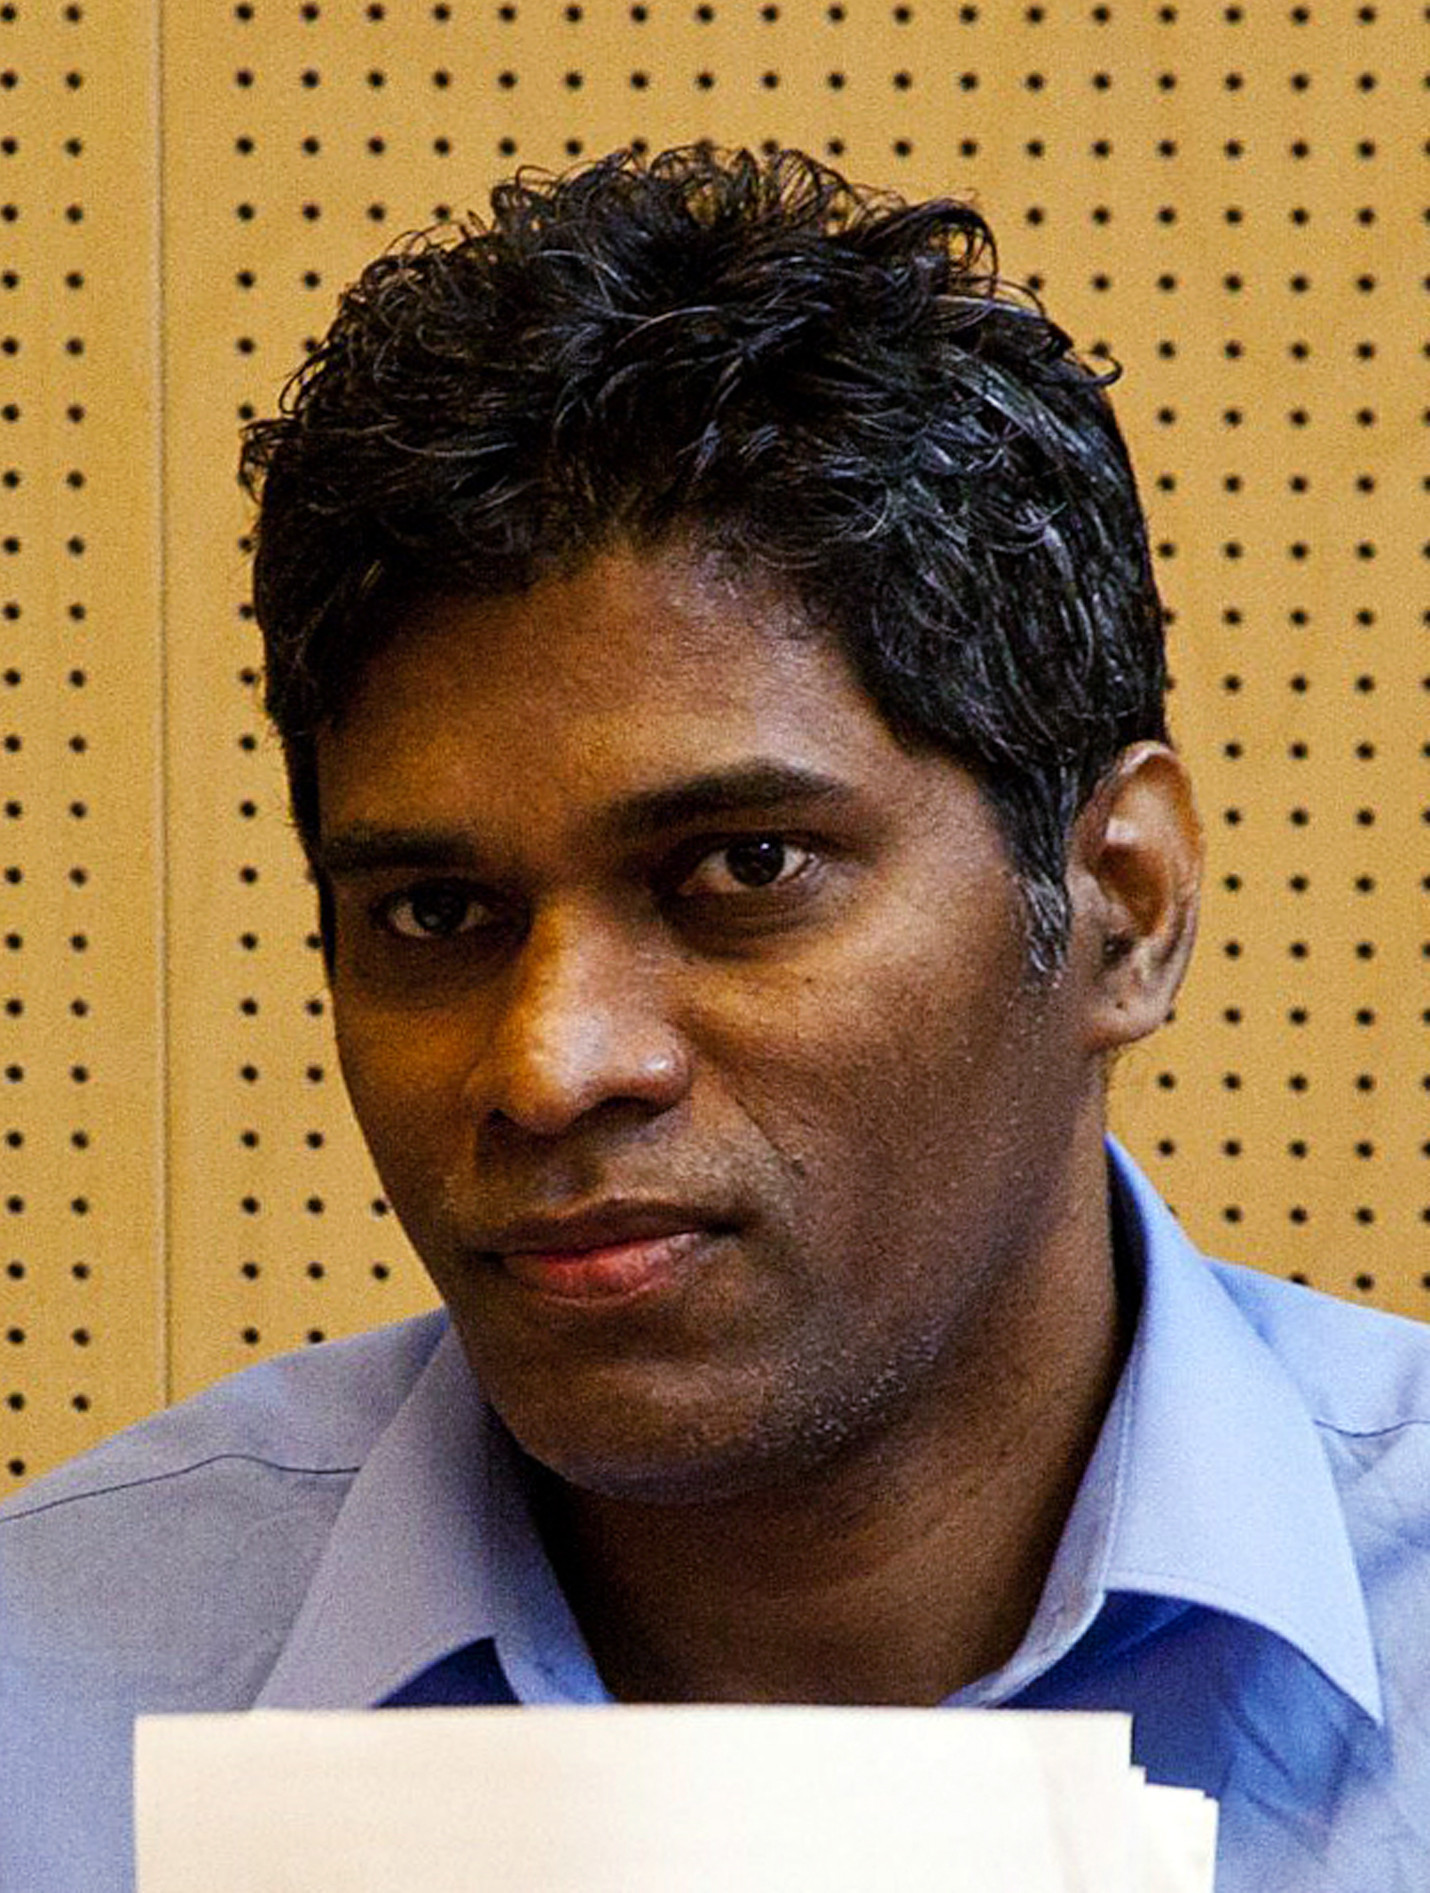 FIFA said the investigation centred around matches which convicted Singapore-based match-fixer Wilson Raj Perumal attempted to manipulate for betting purposes ©Getty Images